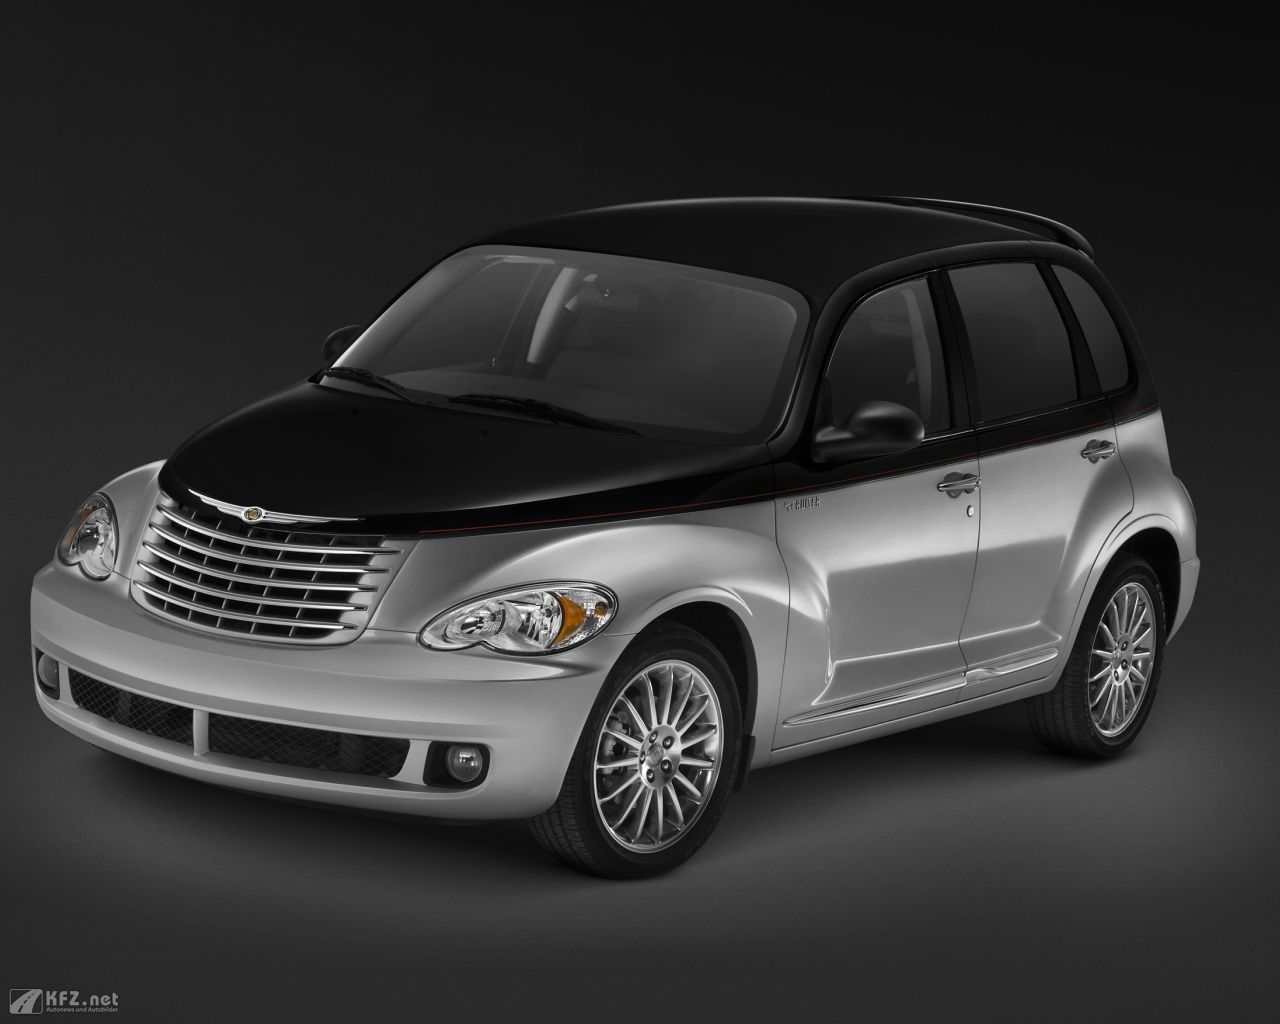 chrysler-pt-cruiser-1280x1024-19